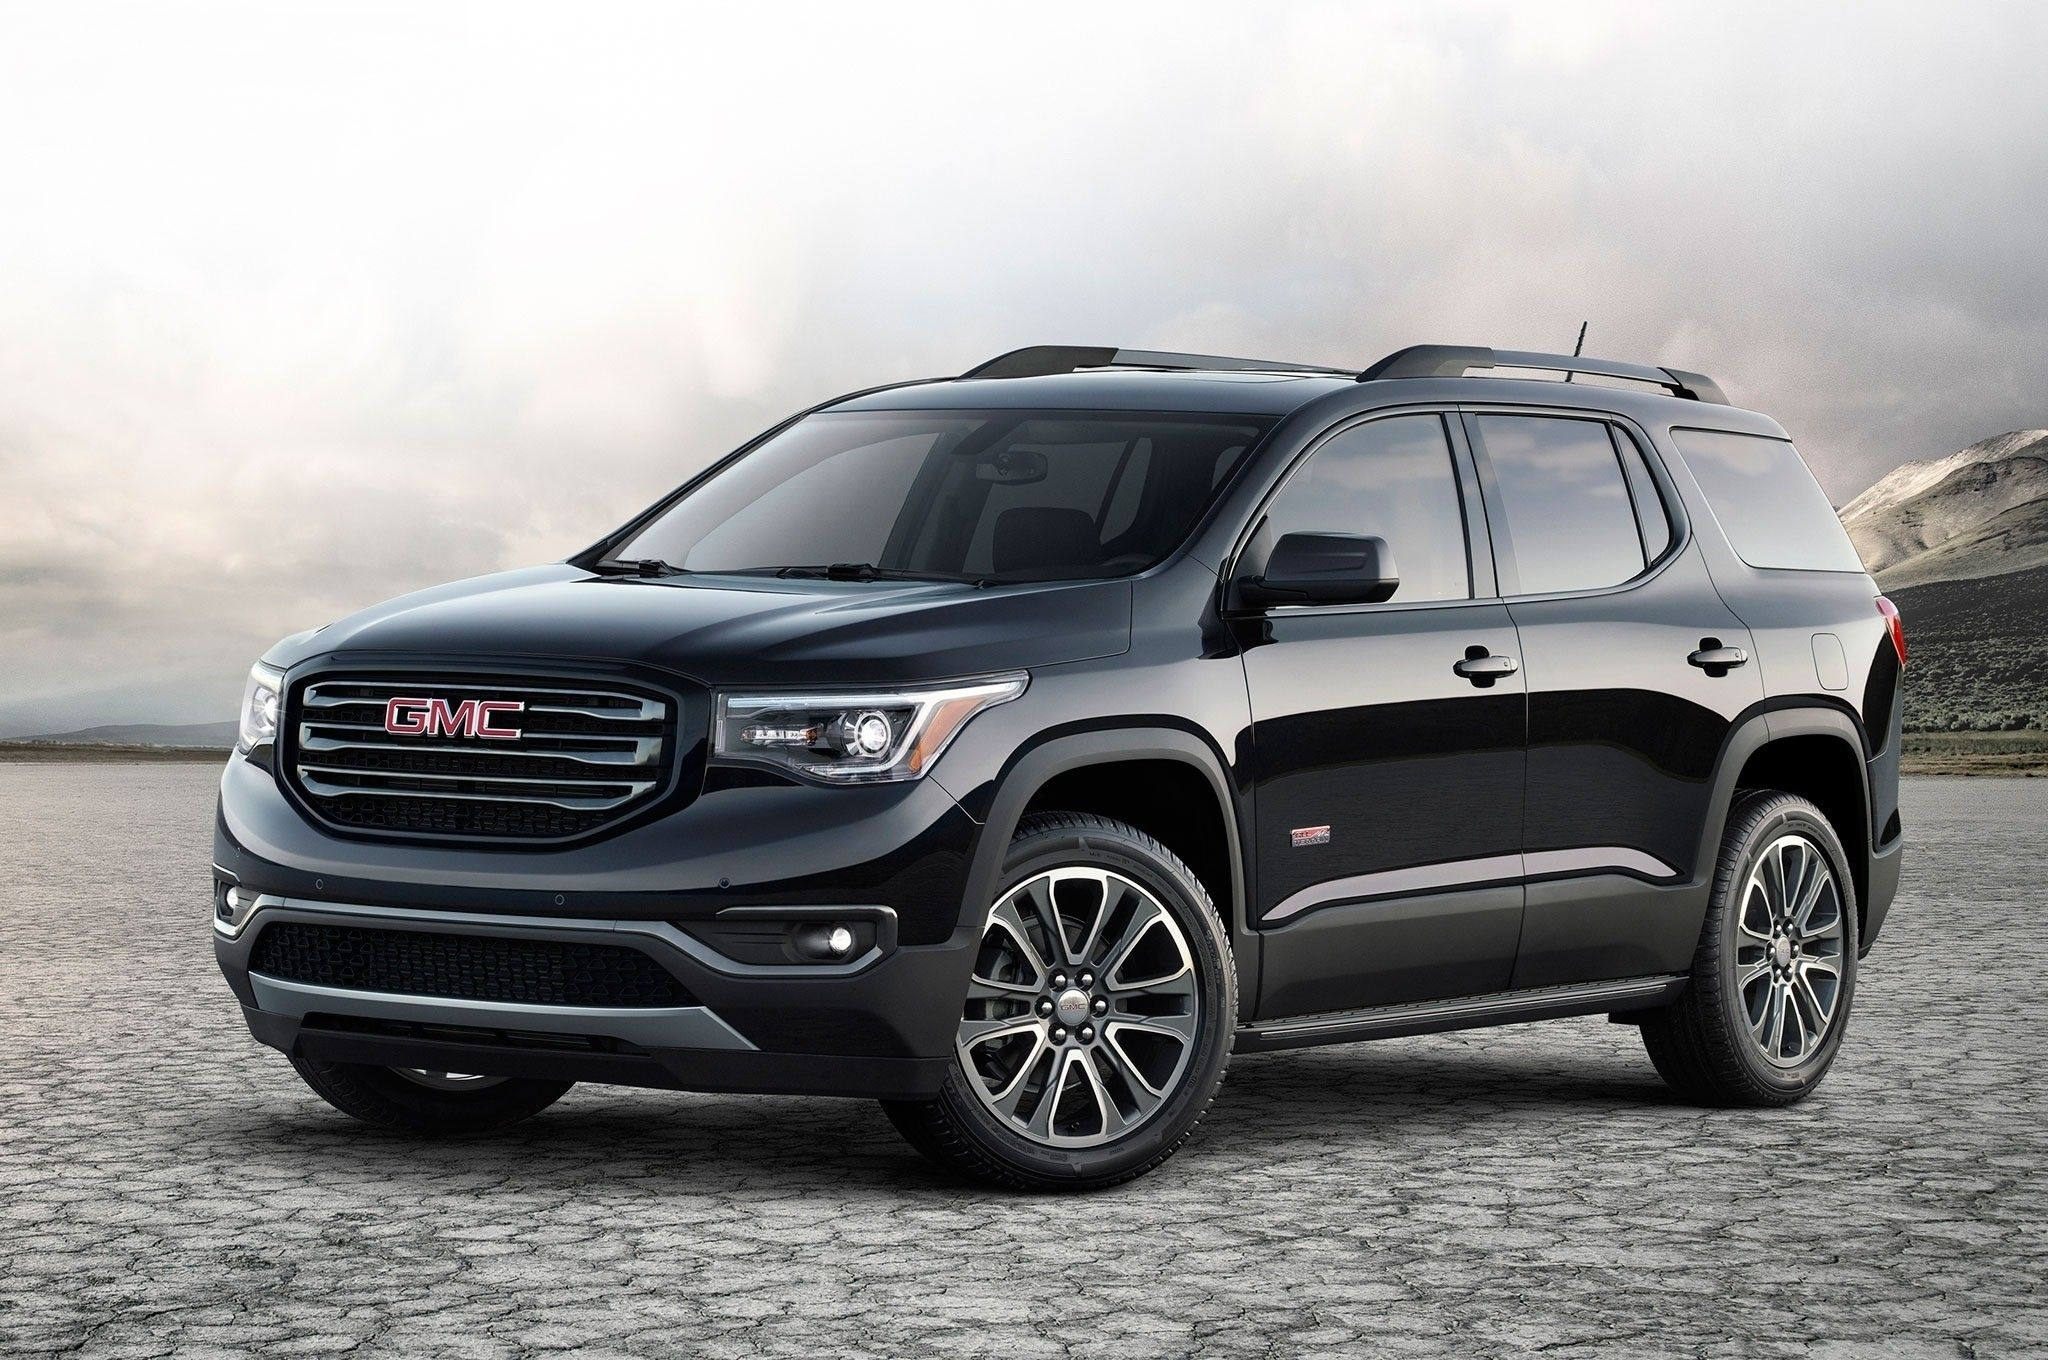 2019 Gmc Envoy Exterior And Interior Review Gmc Envoy Suv Cars